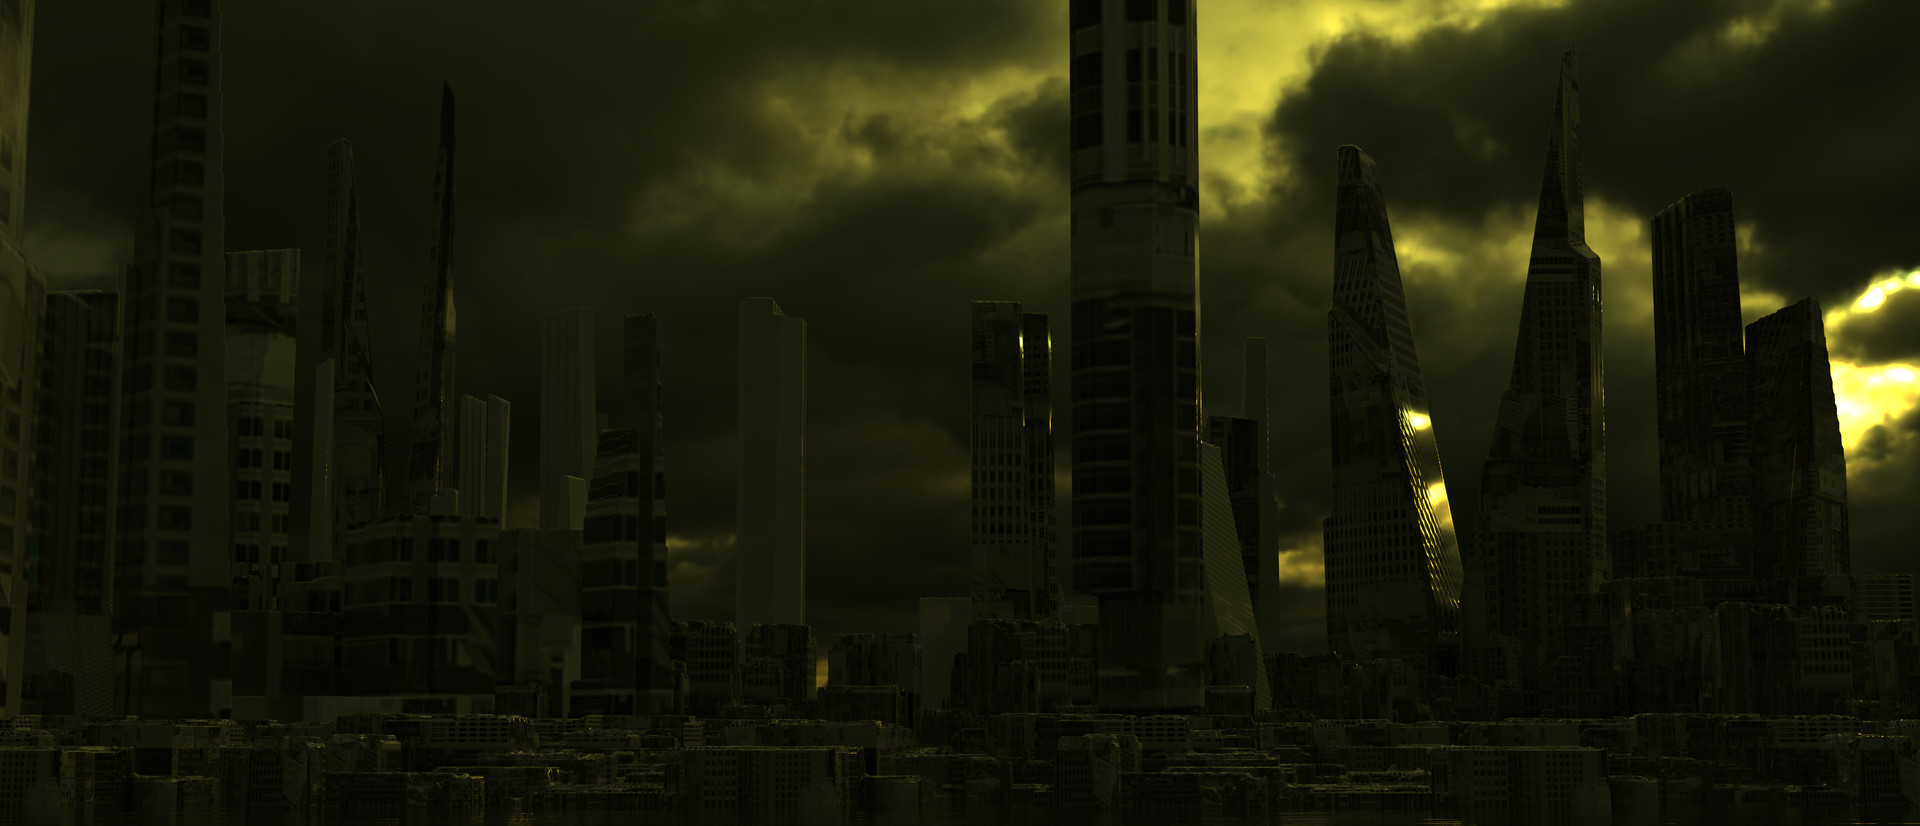 Duncan halleck scifi city 4